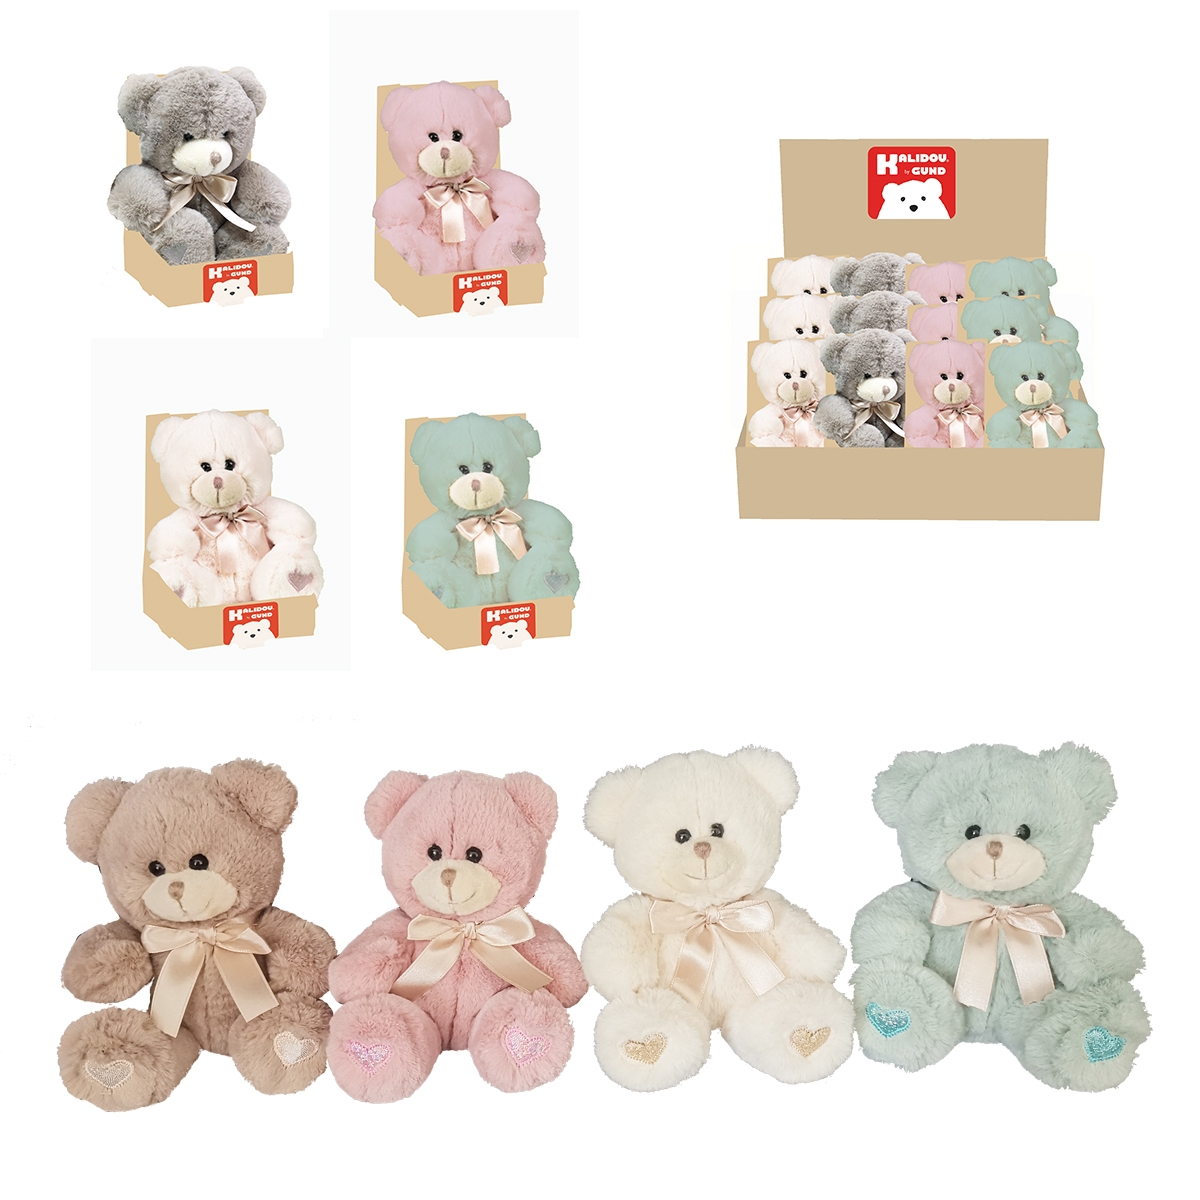 PELUCHE OURS PASTEL COEUR BRODE 15CM